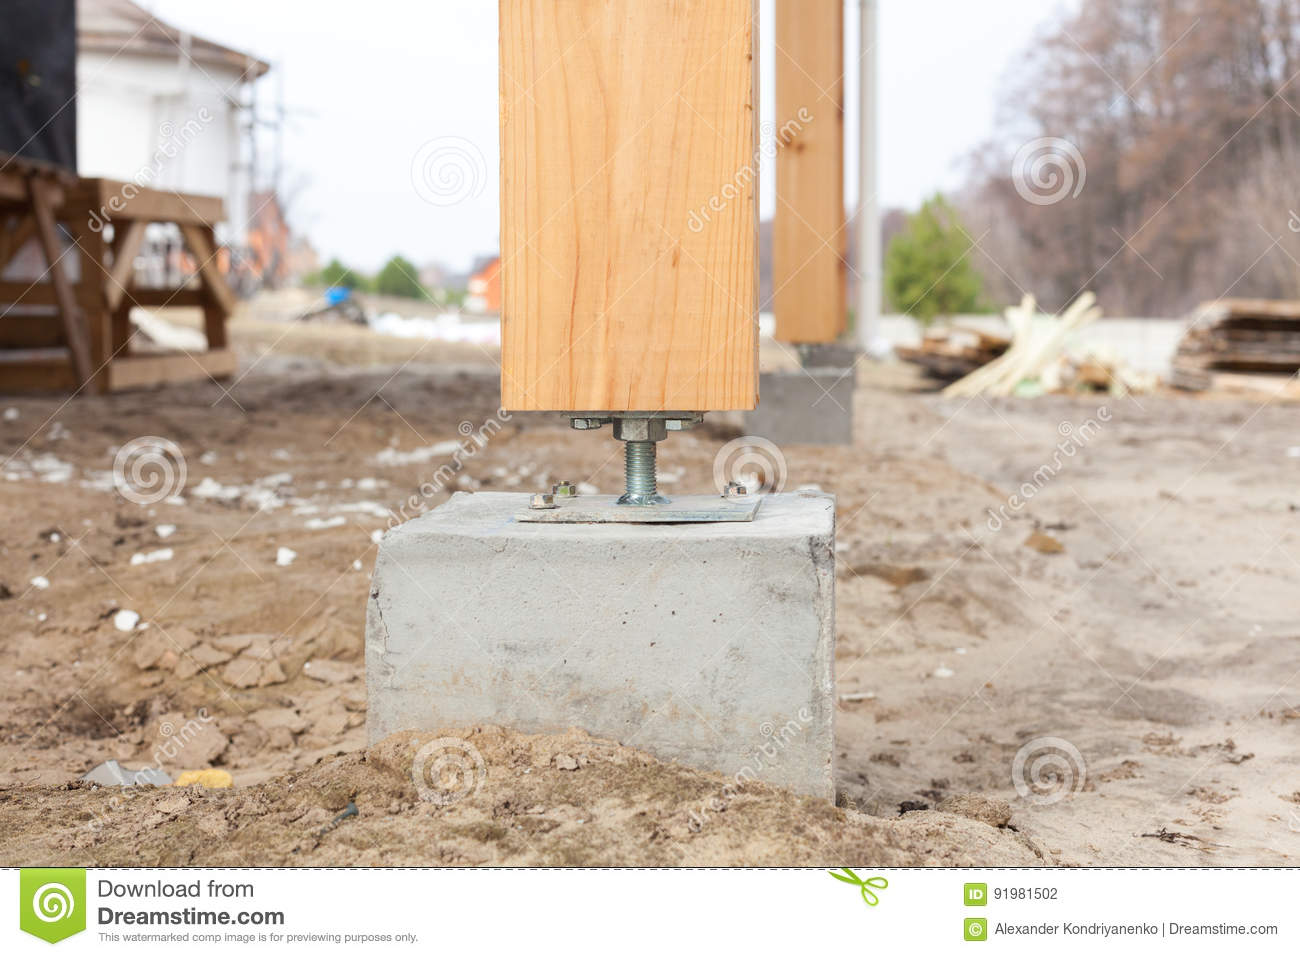 Wooden pillar on the construction site concrete with screw for Post and pillar foundation